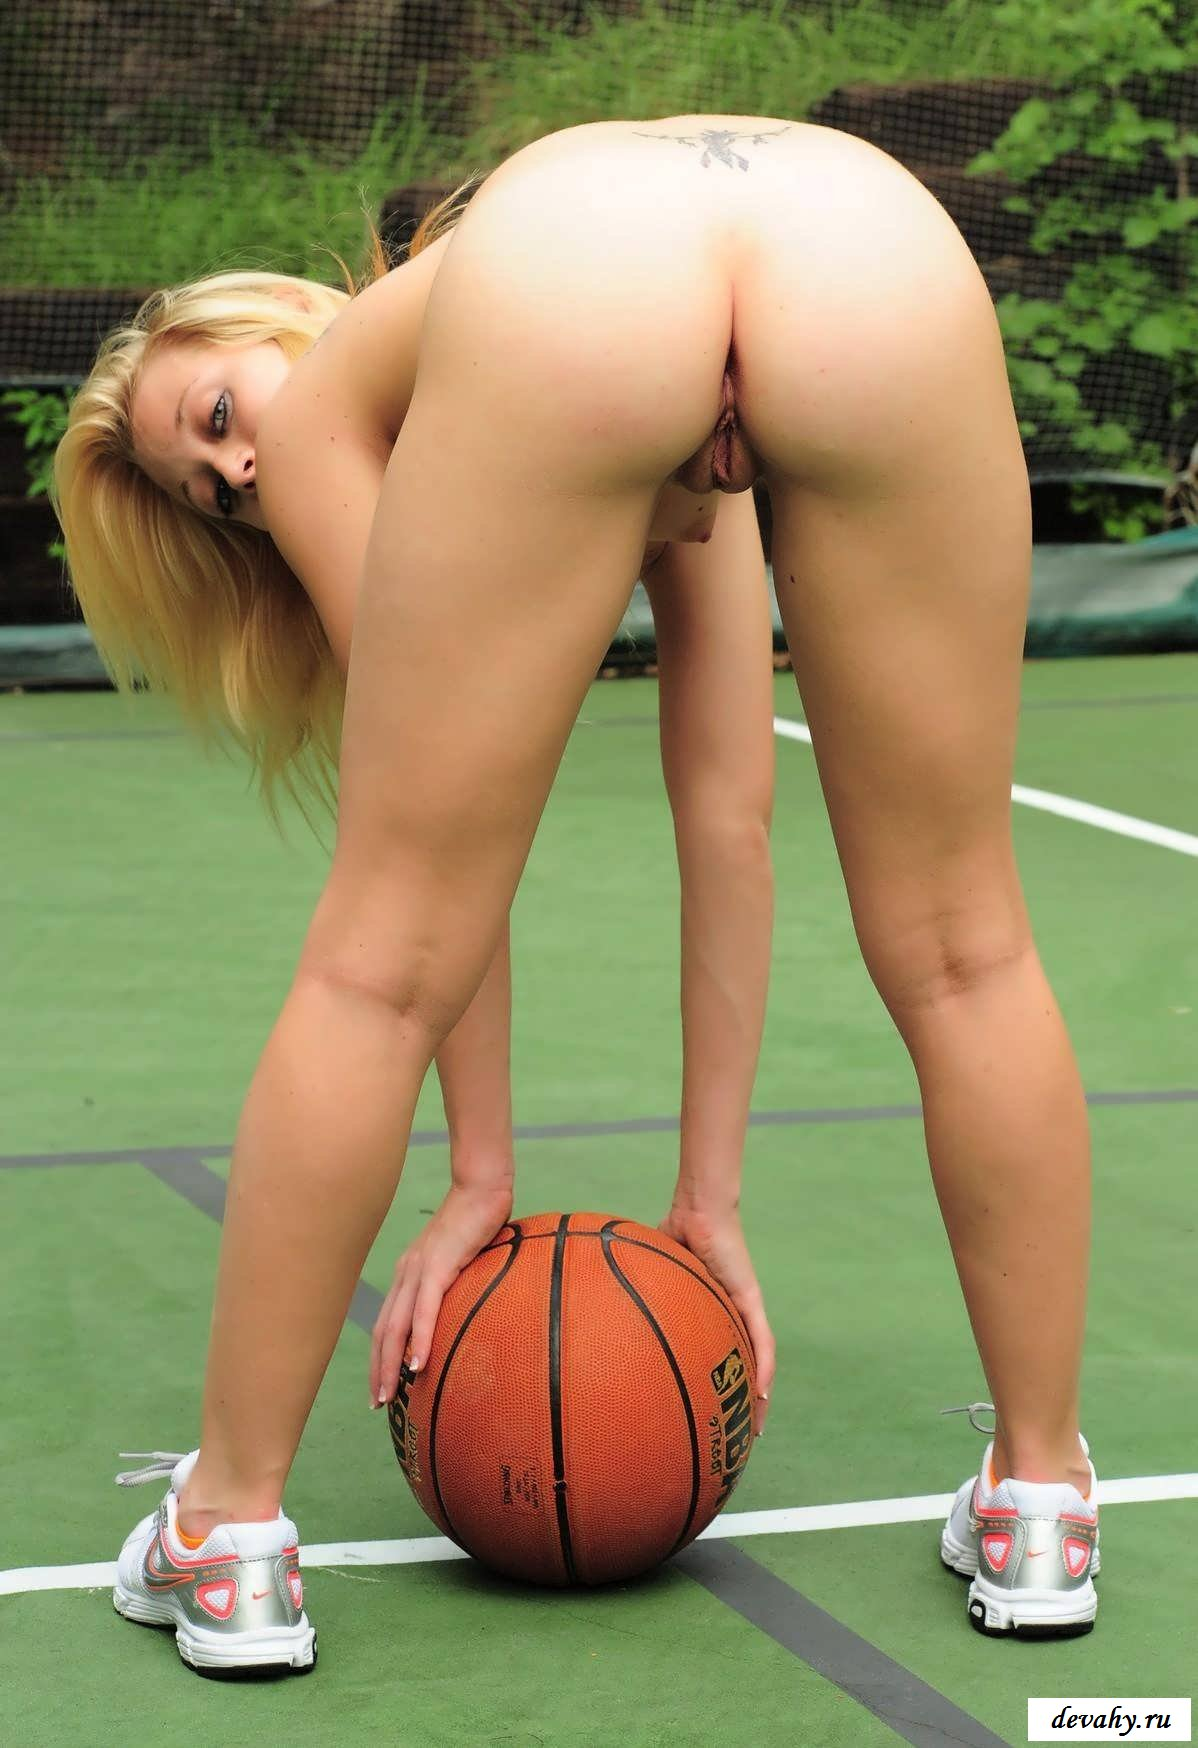 Basketball boobs naked, medicalboys amazing